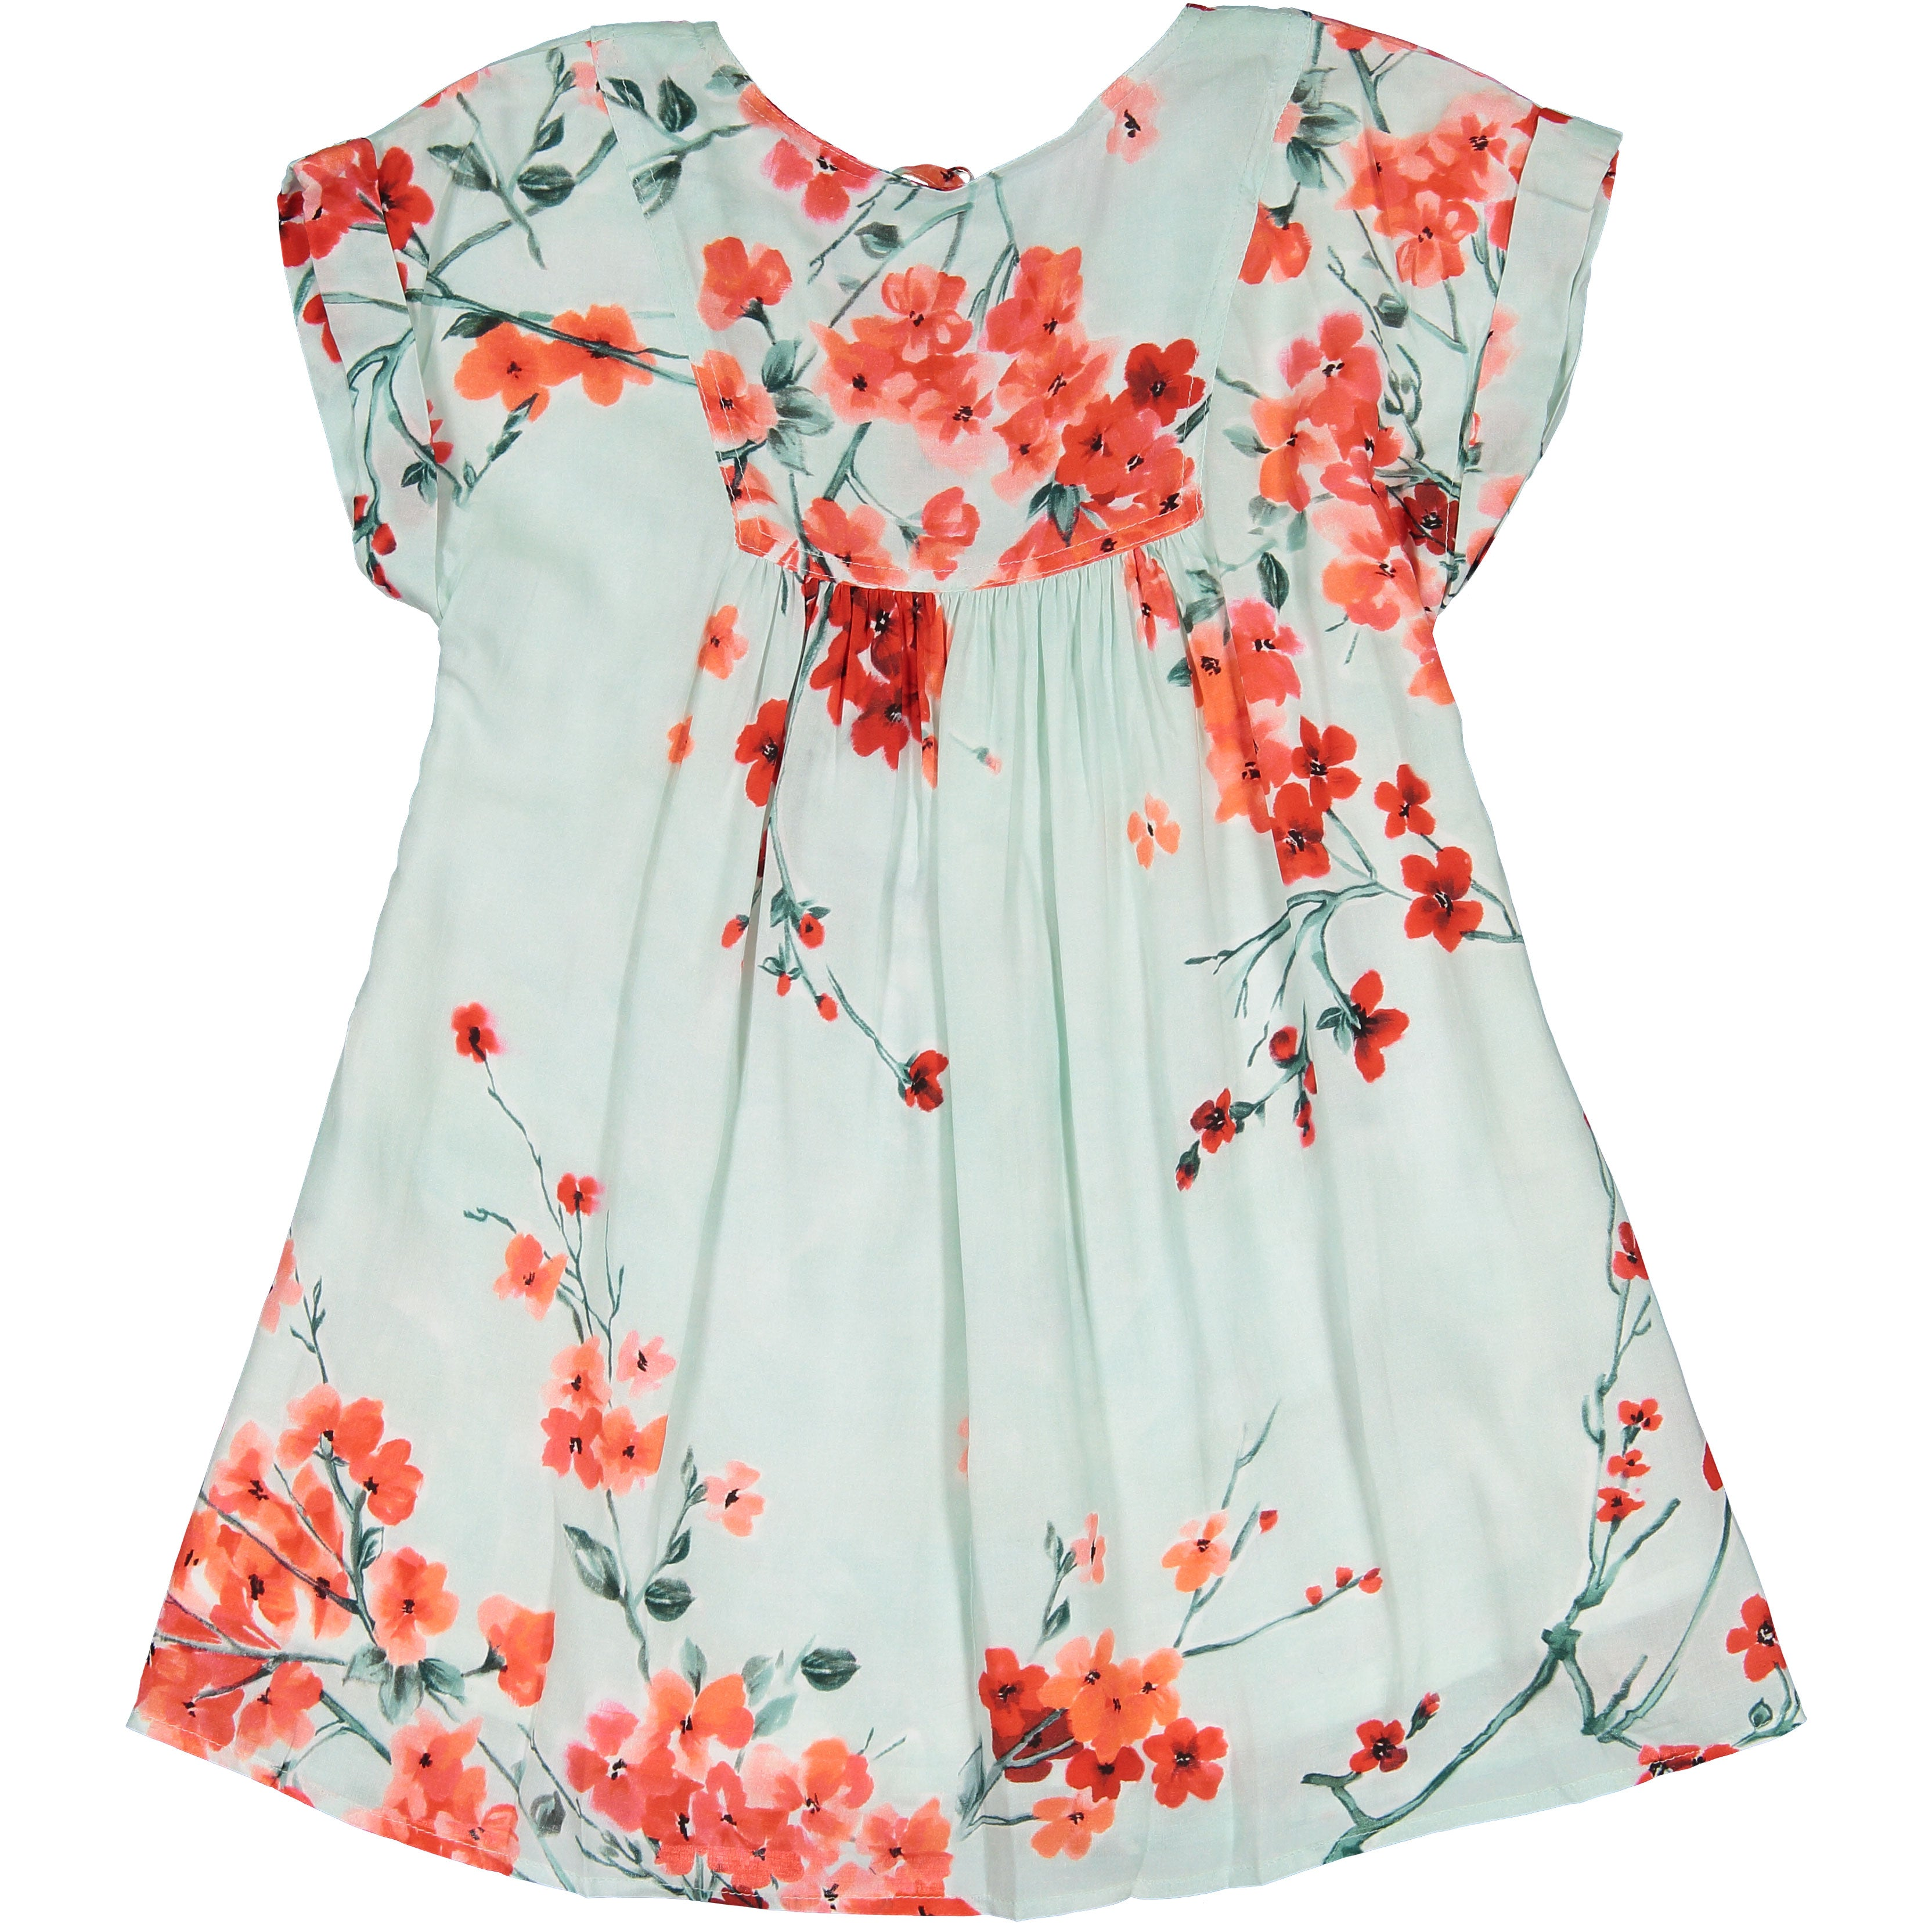 Maan Mint Blossom Dress - Ladida